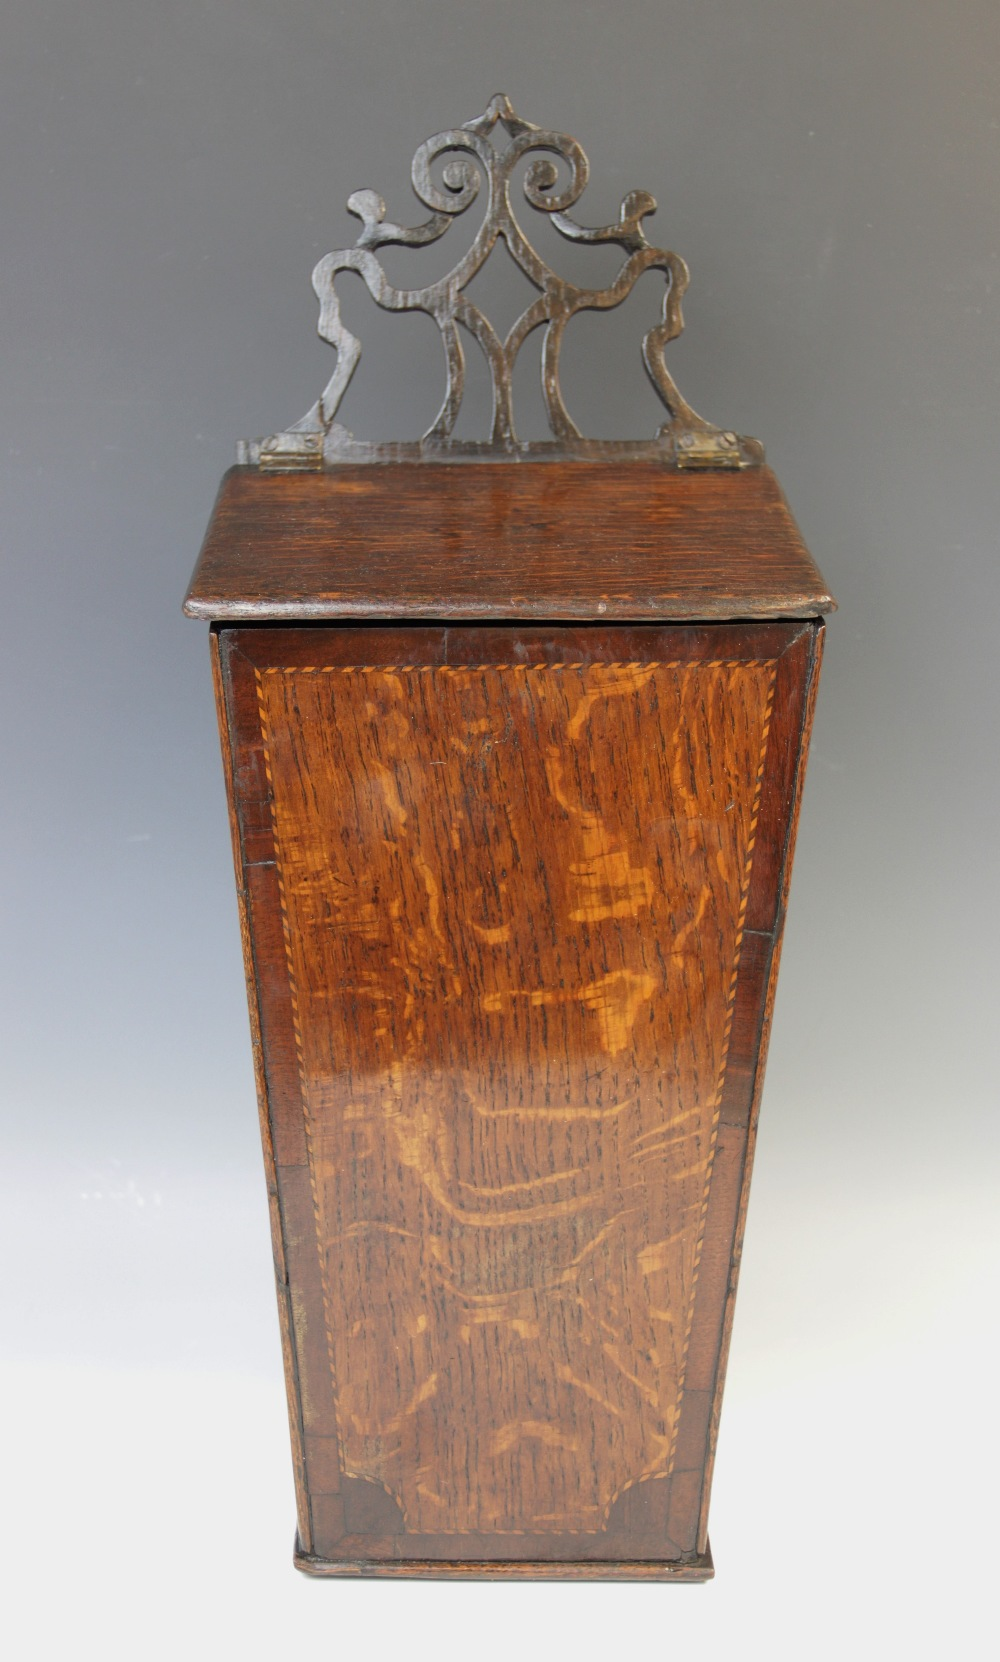 A George III oak and mahogany cross banded candle box, of typical tapering form, with associated